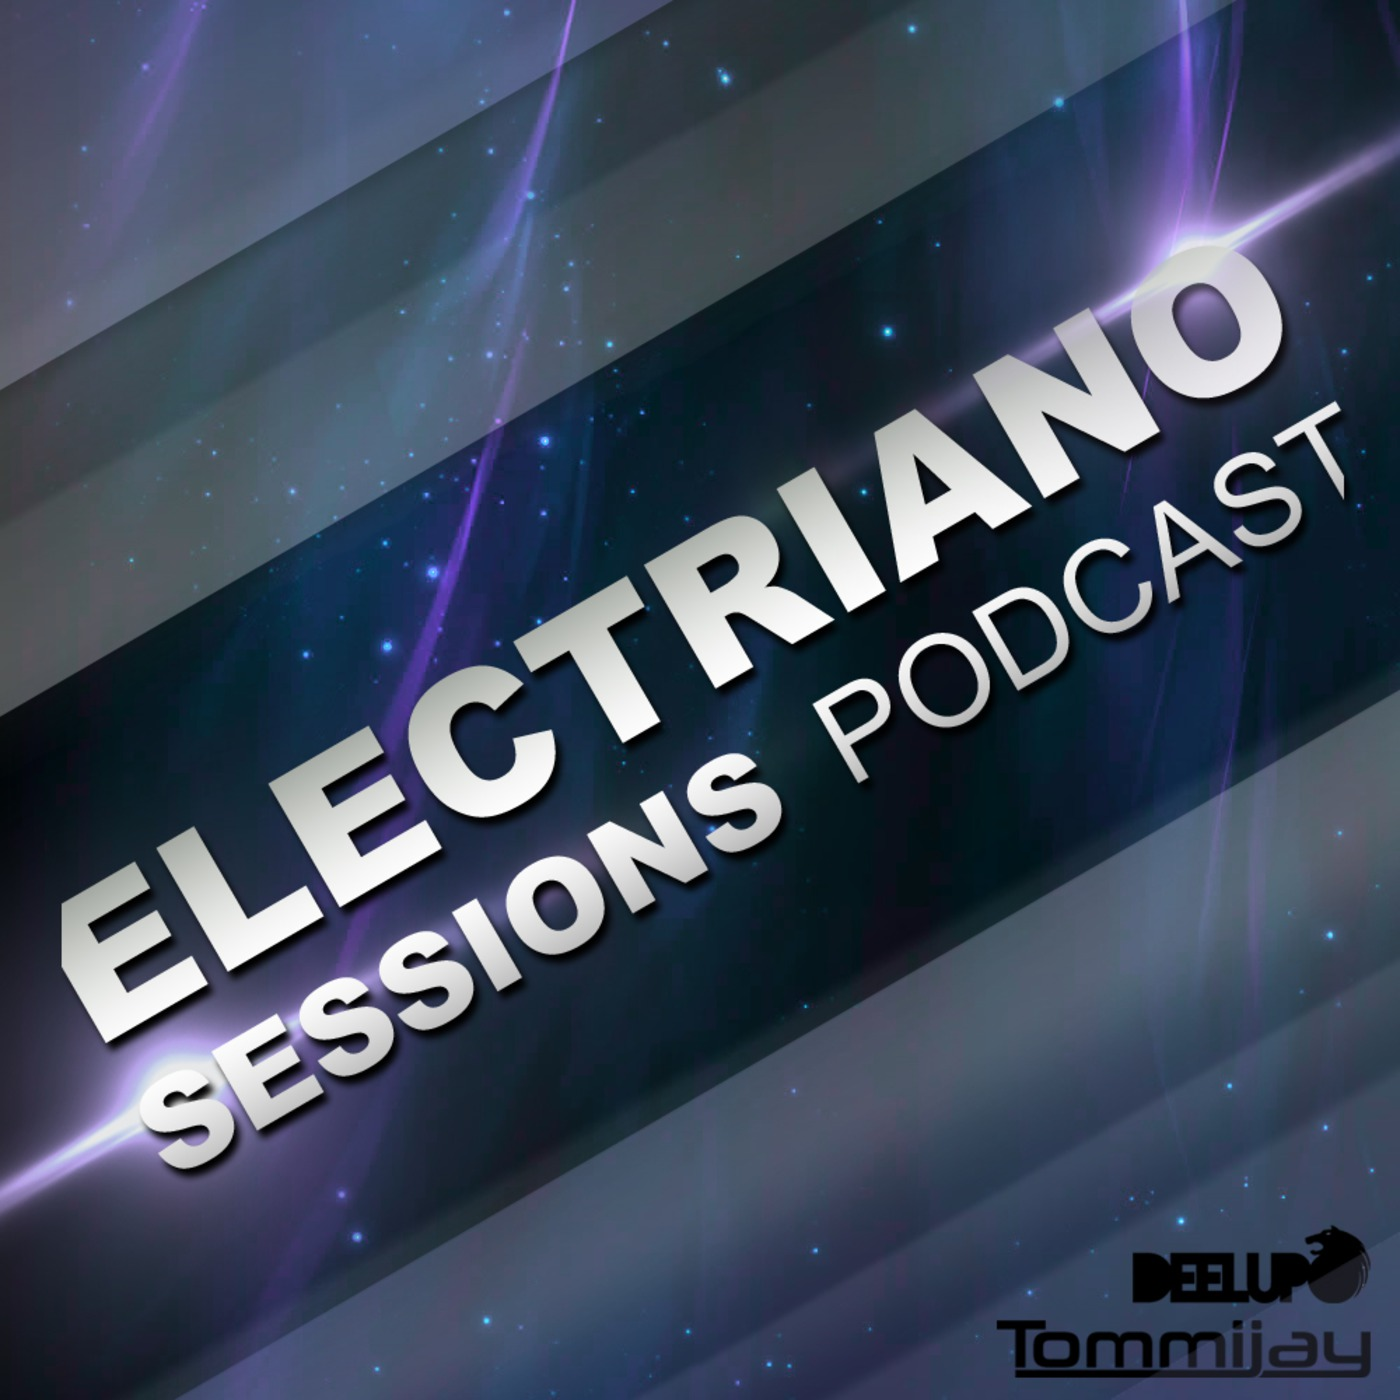 Deelupo & Tommijay - Electriano Sessions Podcast